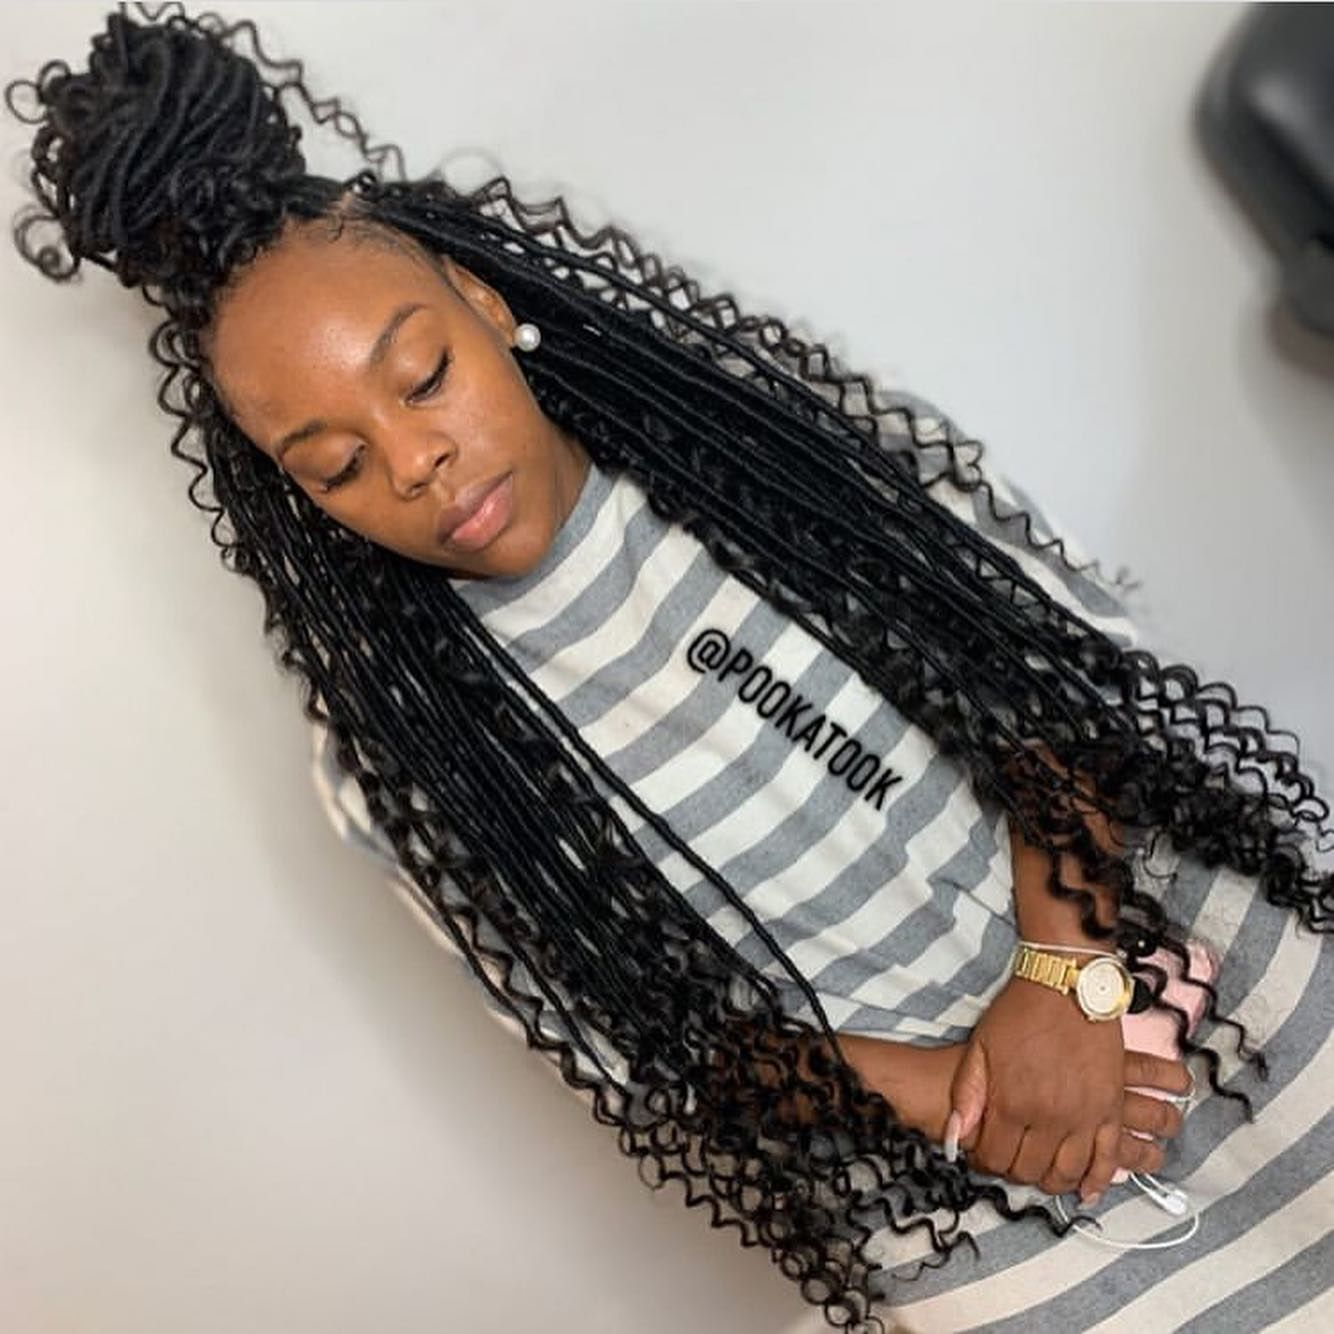 Braided Hairstyles On Yourself Braided Hairstyles Going Up Braided Hairstyles Salon 60 Braid In 2020 Braided Hairstyles Braids For Black Hair Box Braids Hairstyles